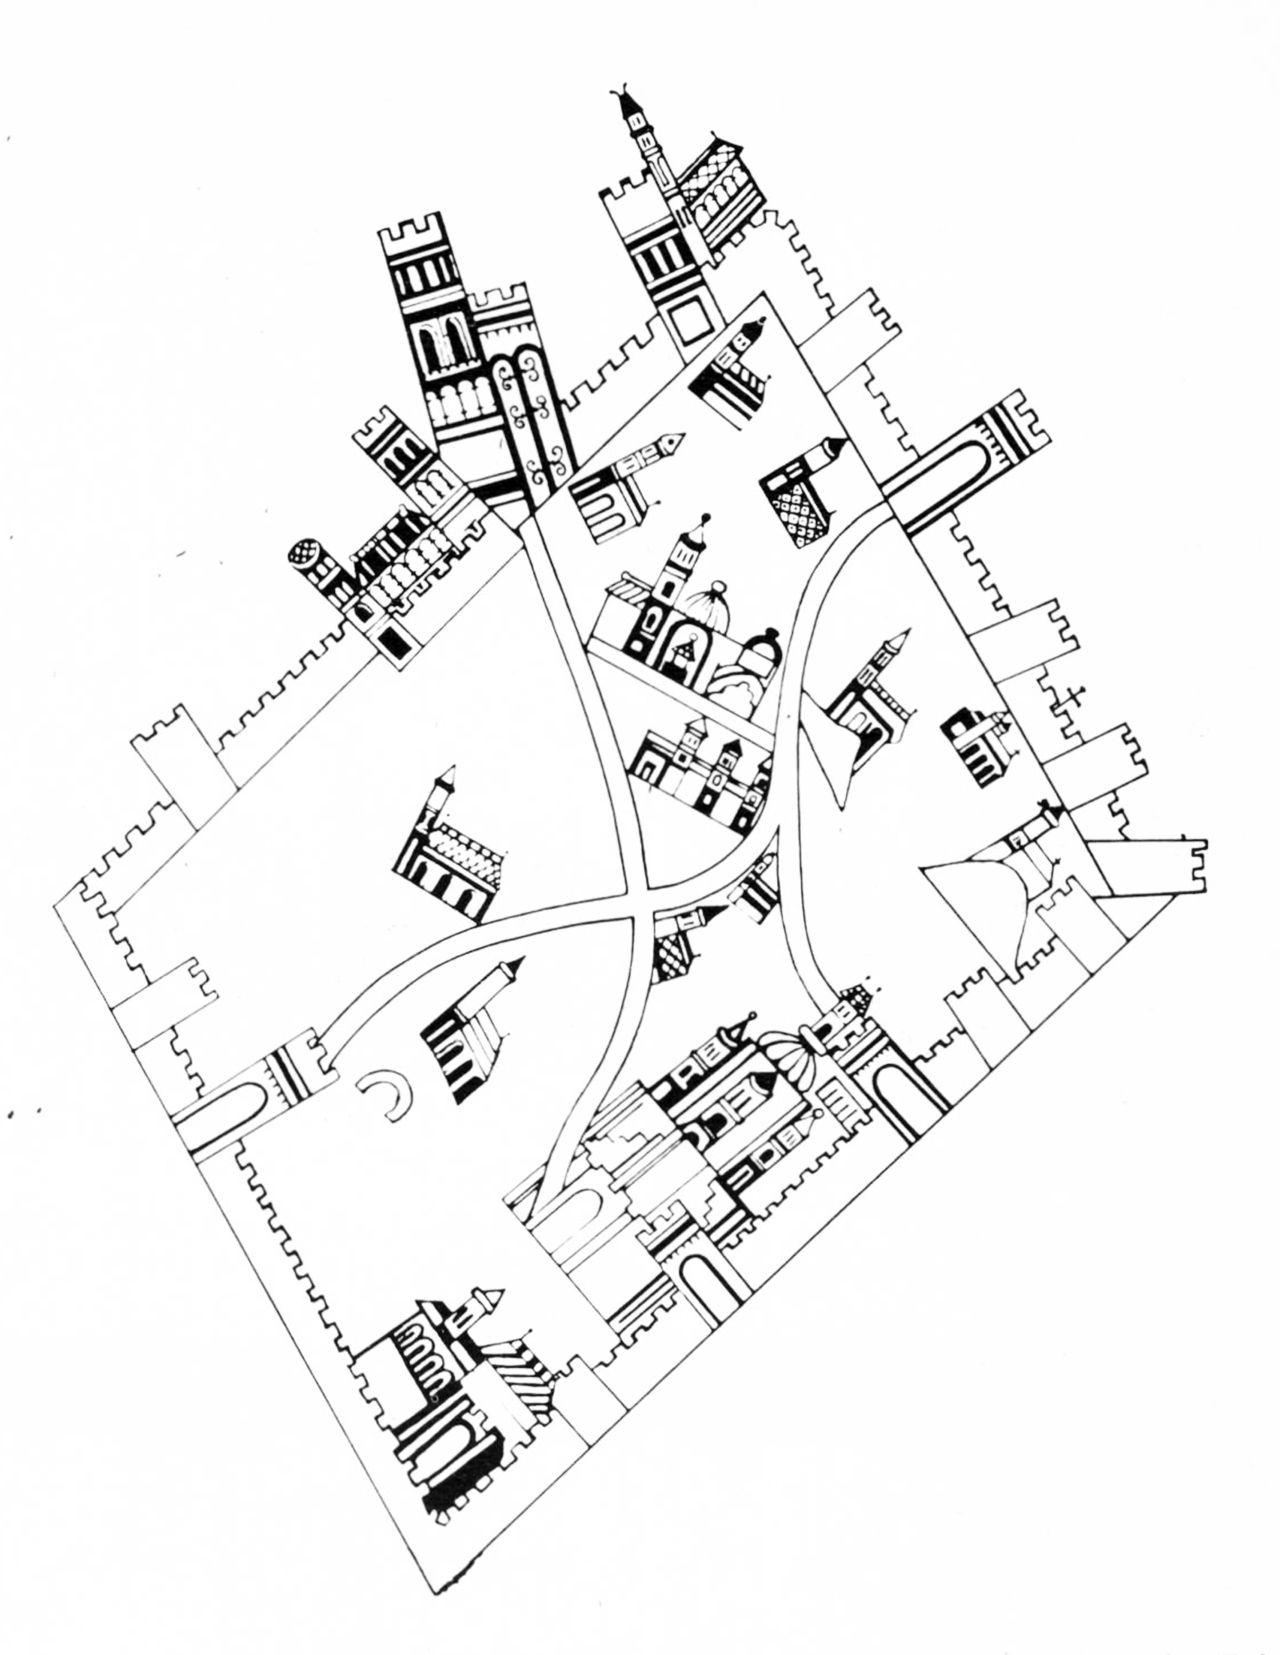 Archidose Photo Architectural Images Pinterest Architecture Diagram Drawings Map Collage Diagrams Plan Drawing 12th